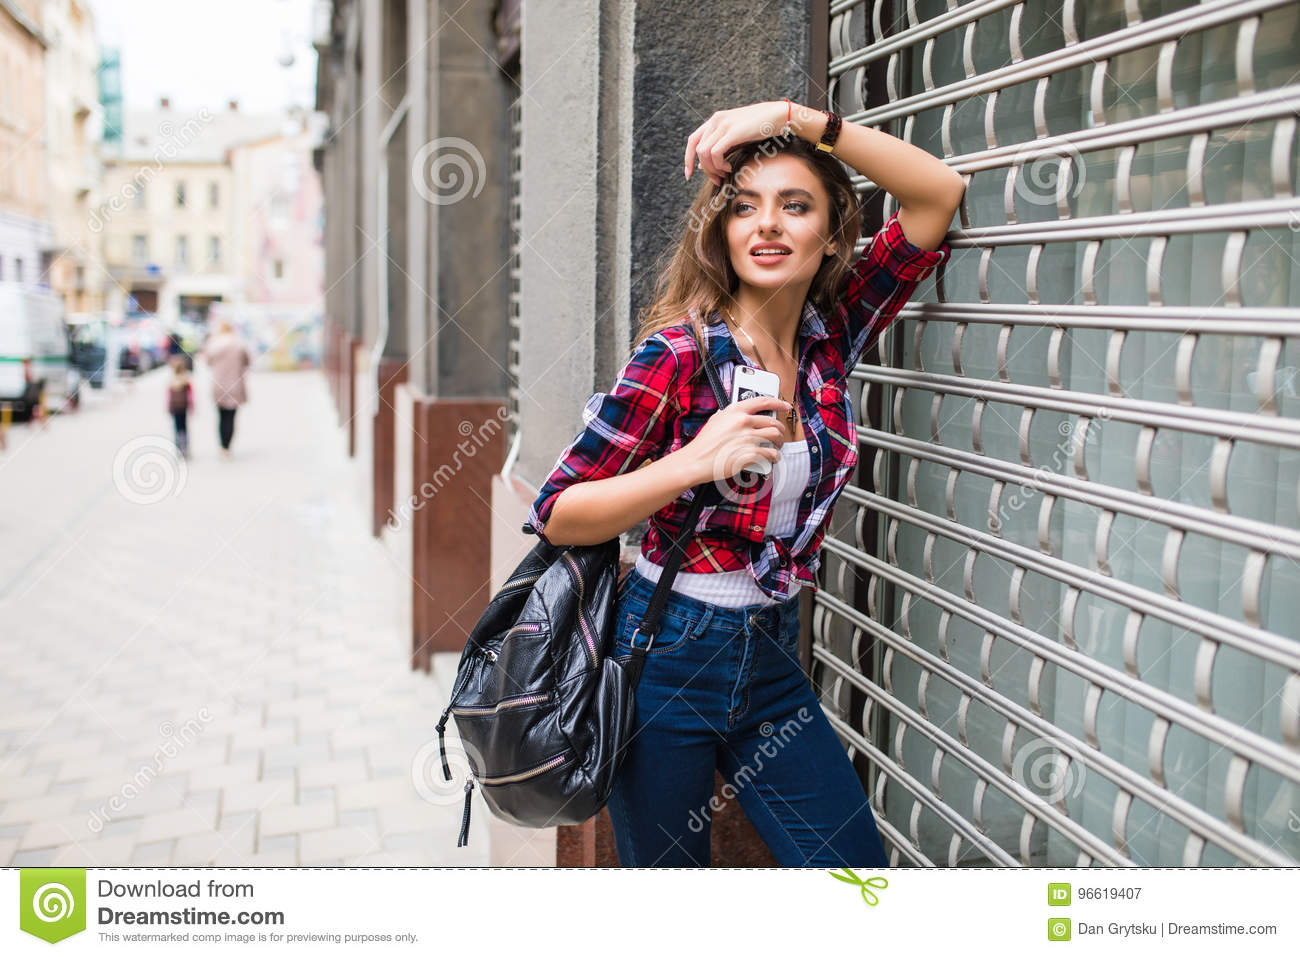 4d6cefaf163 Summer lifestyle fashion portrait of young stylish hipster woman walking on  street